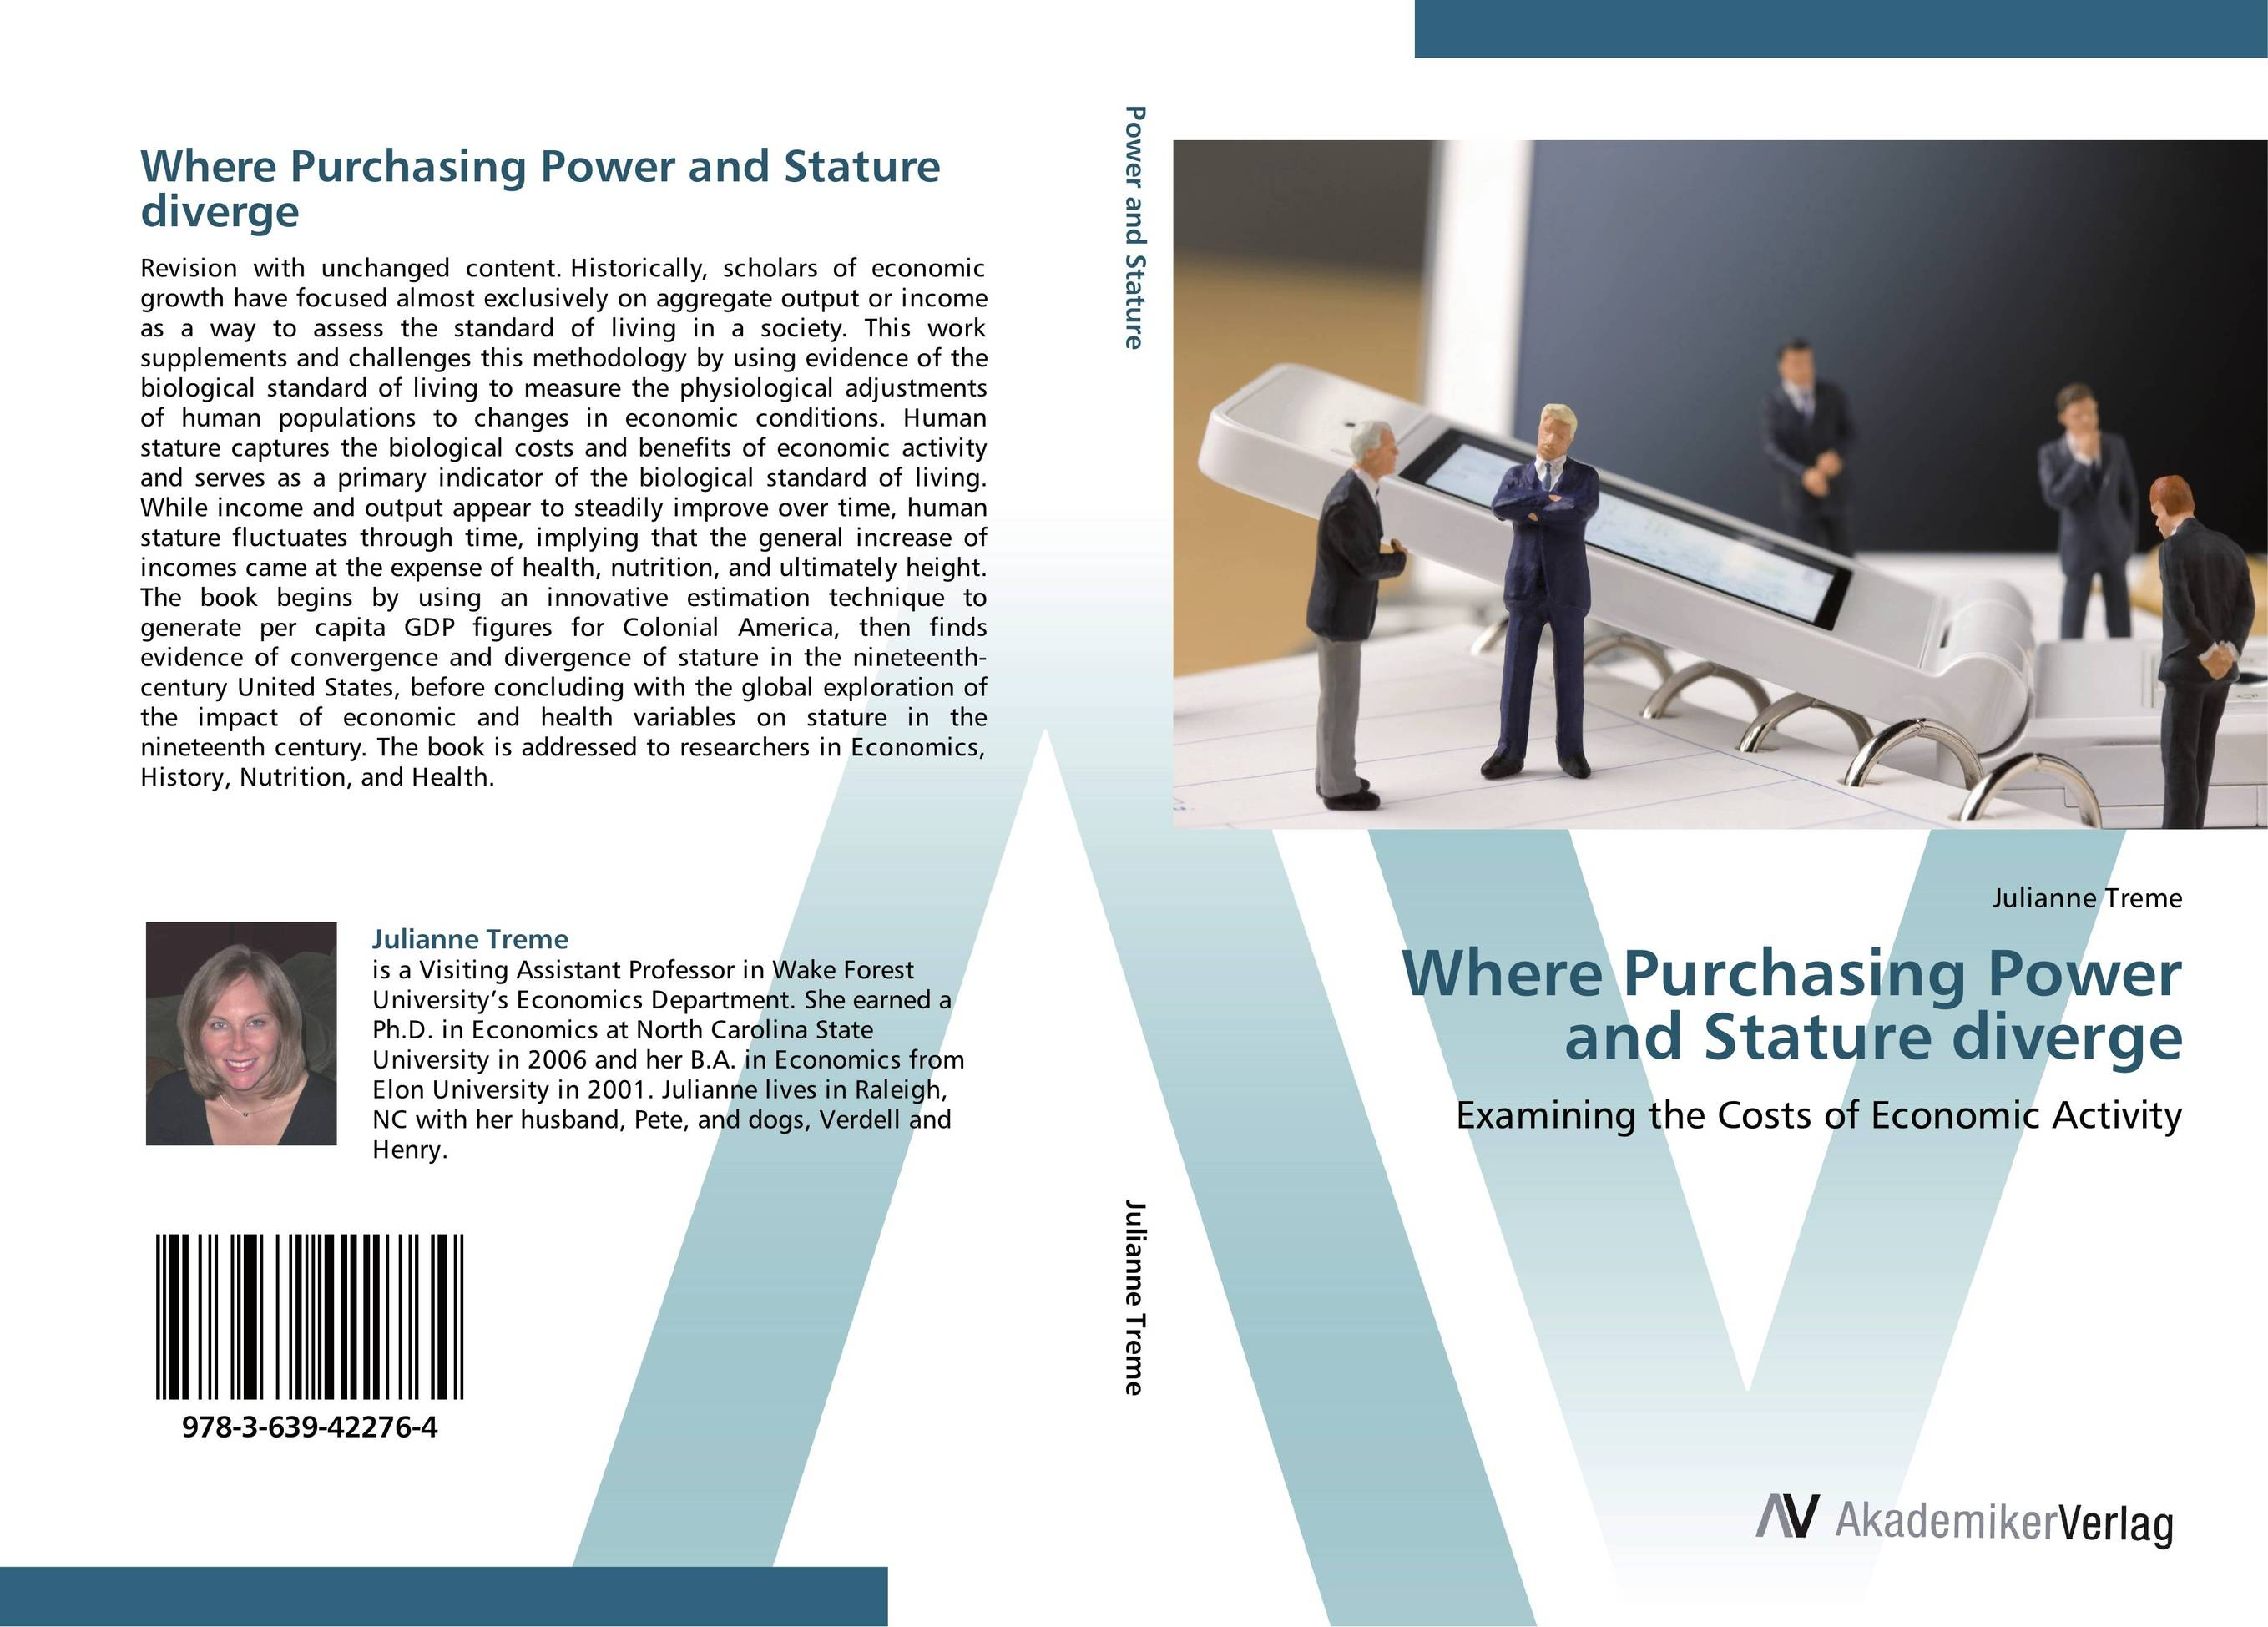 Where Purchasing Power and Stature diverge economic methodology